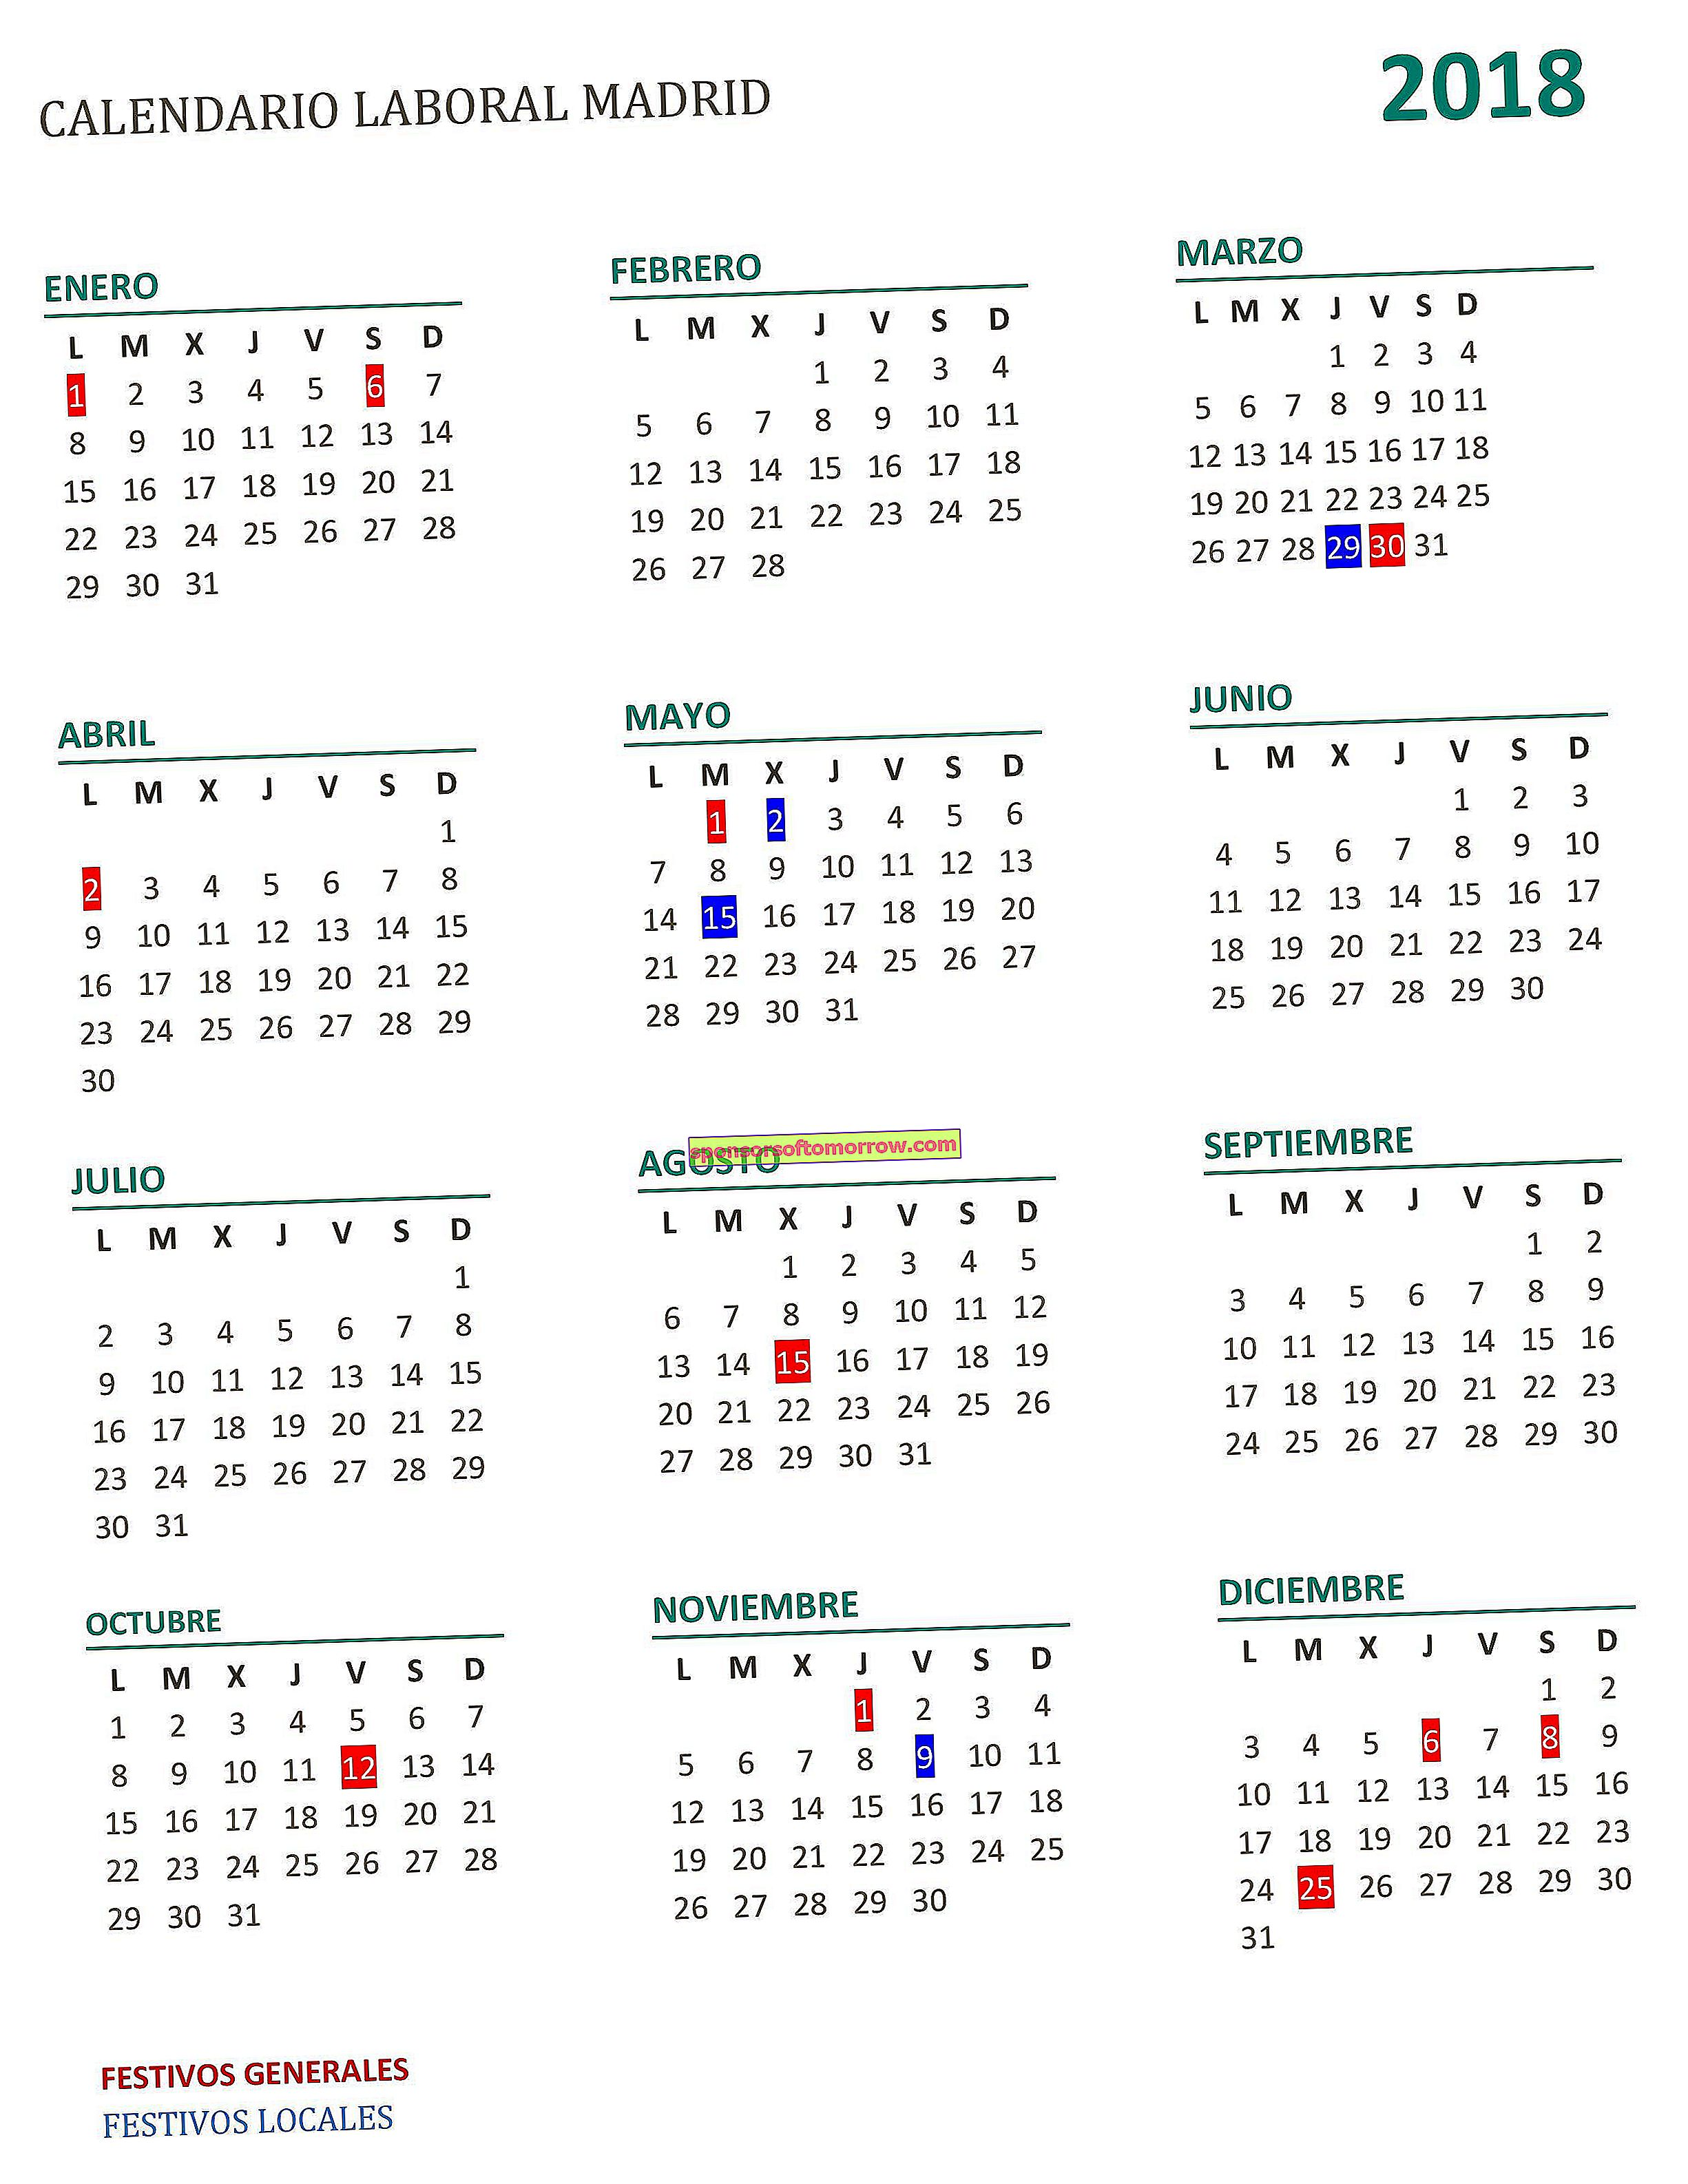 Calendario laboral 2018 de Madrid